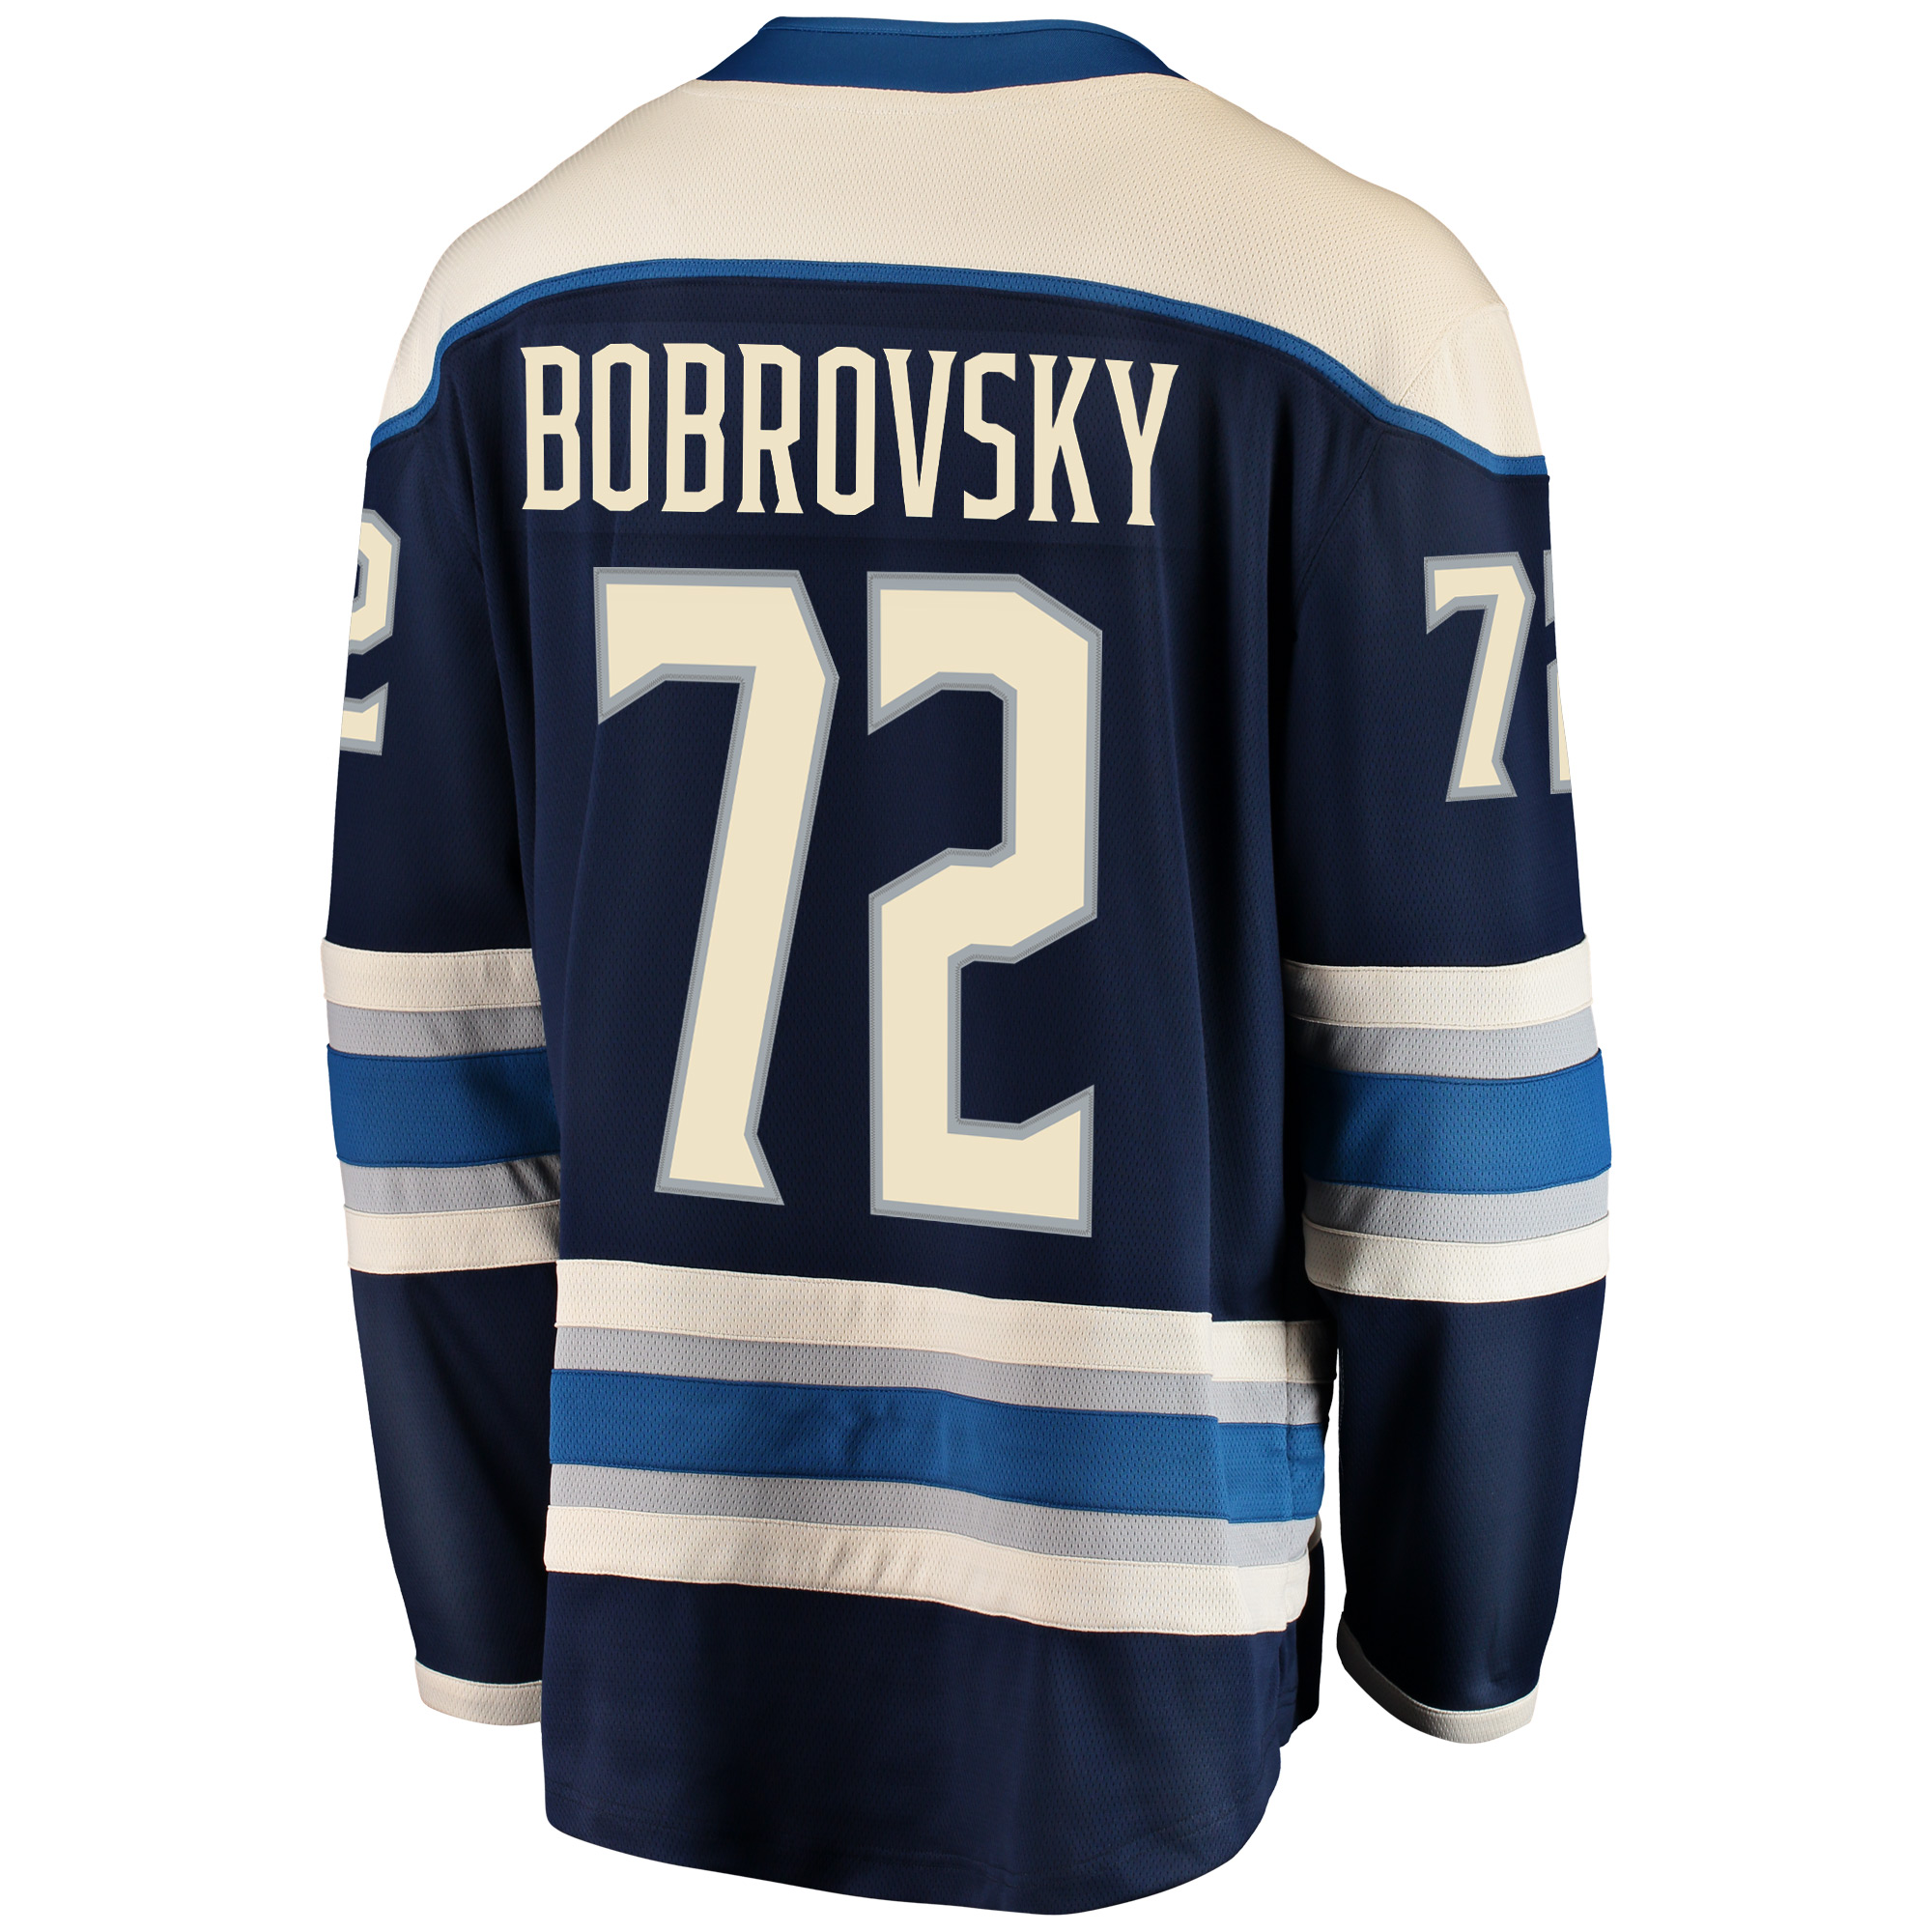 low cost 4dab3 1f33a Sergei Bobrovsky Columbus Blue Jackets Fanatics Branded Breakaway Alternate  Player Jersey - Navy - Walmart.com